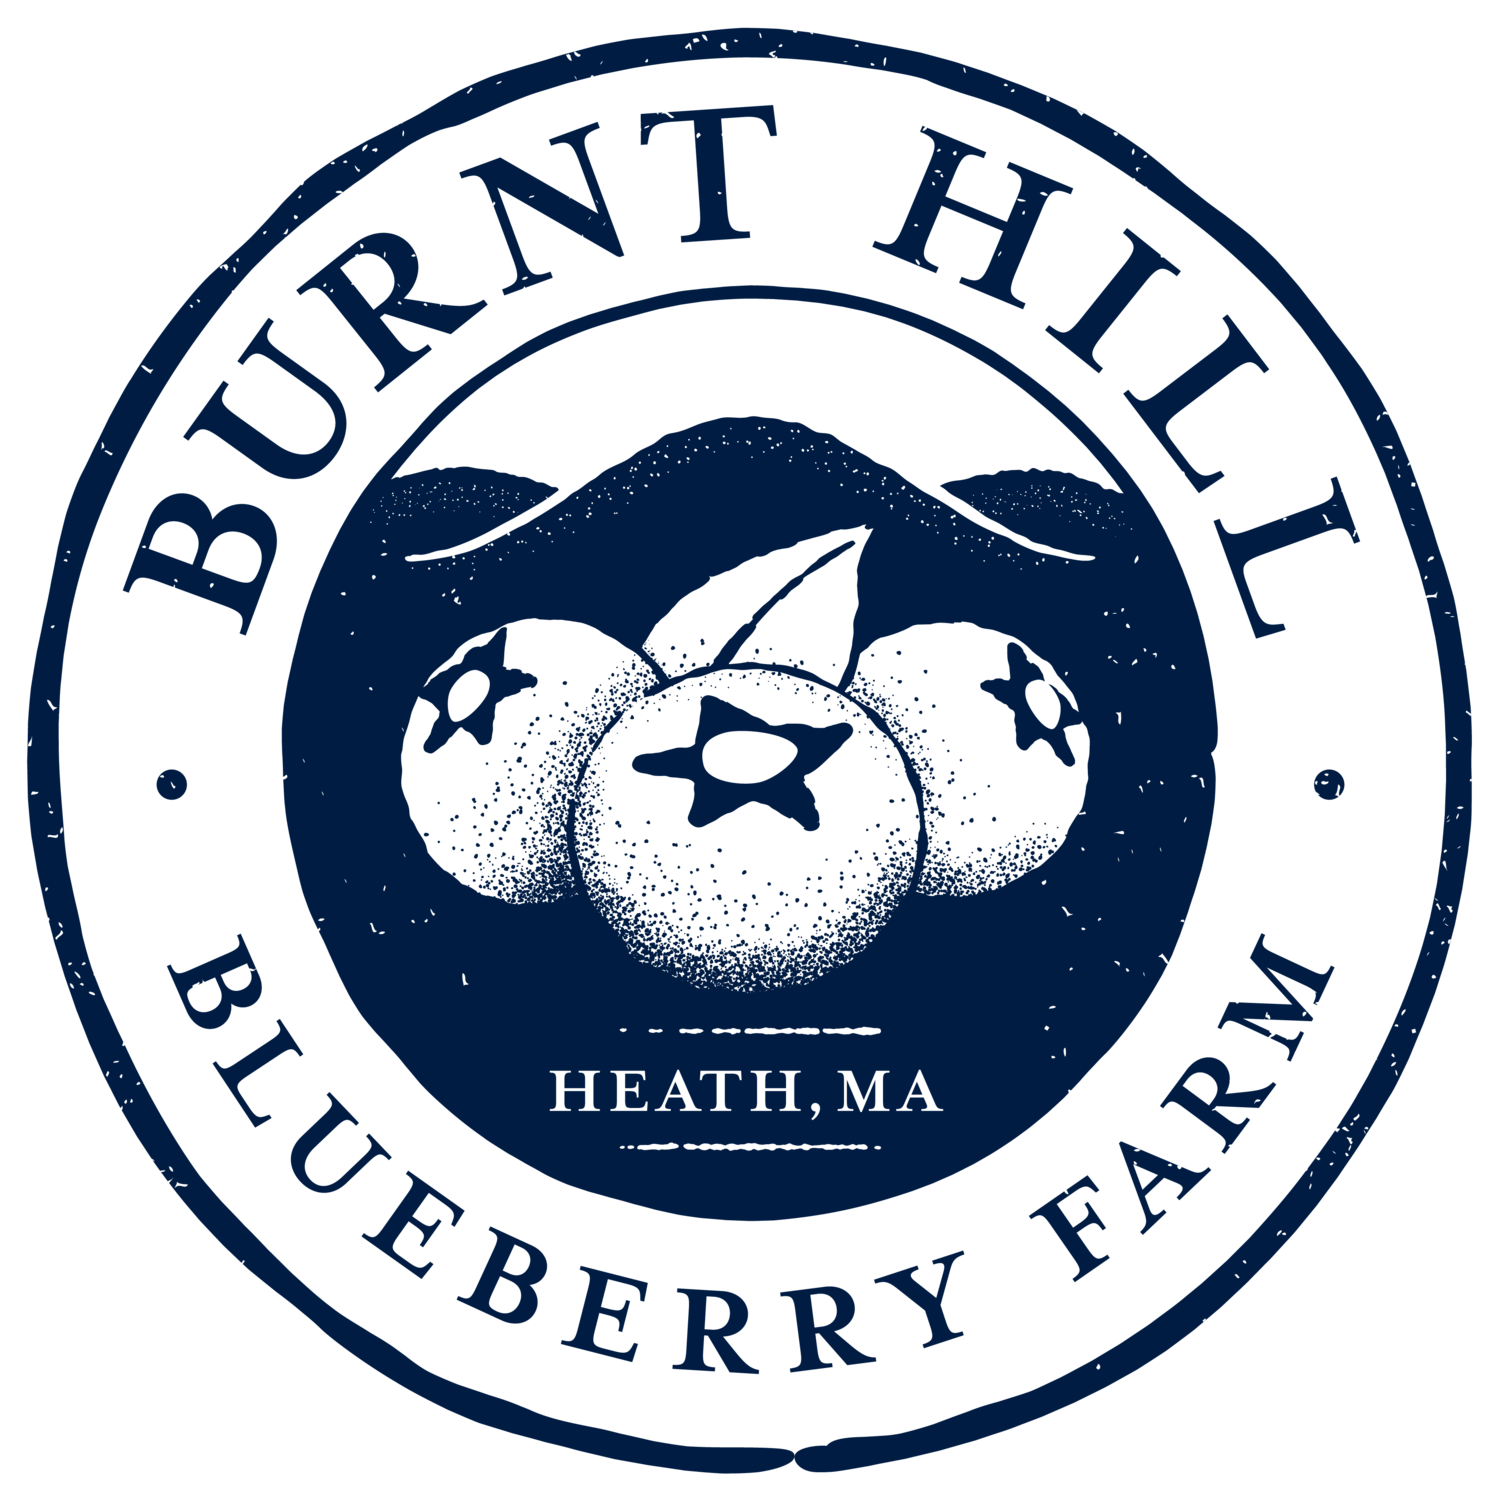 Burnt Hill Blueberry Farm Heath Massachusetts